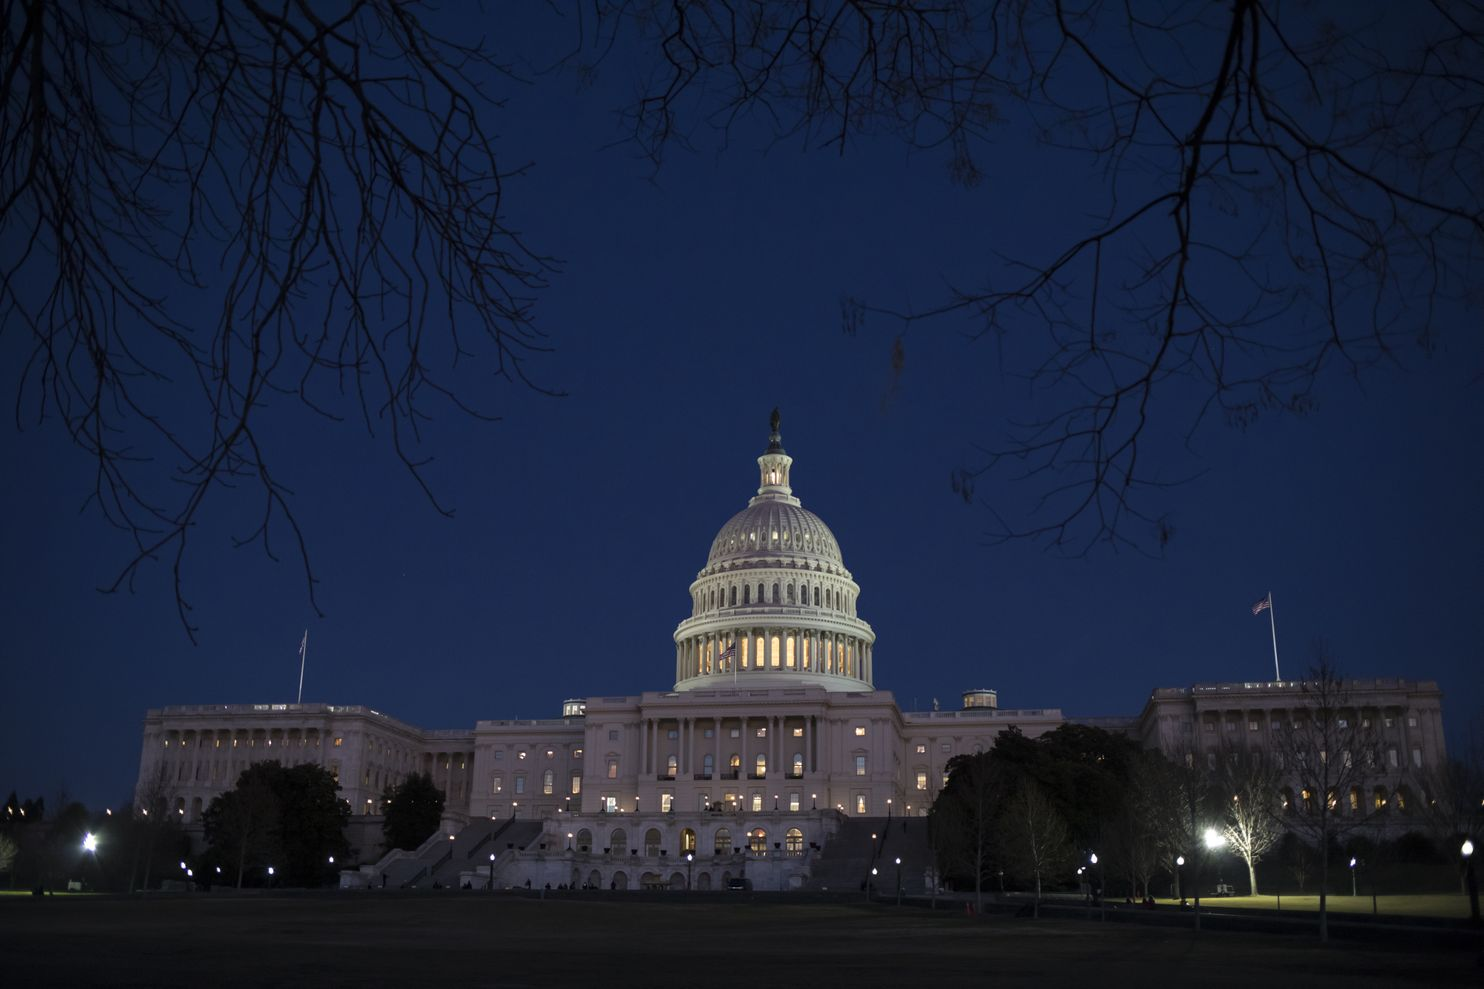 GOP, Dems focus on messages as summer recess, elections near